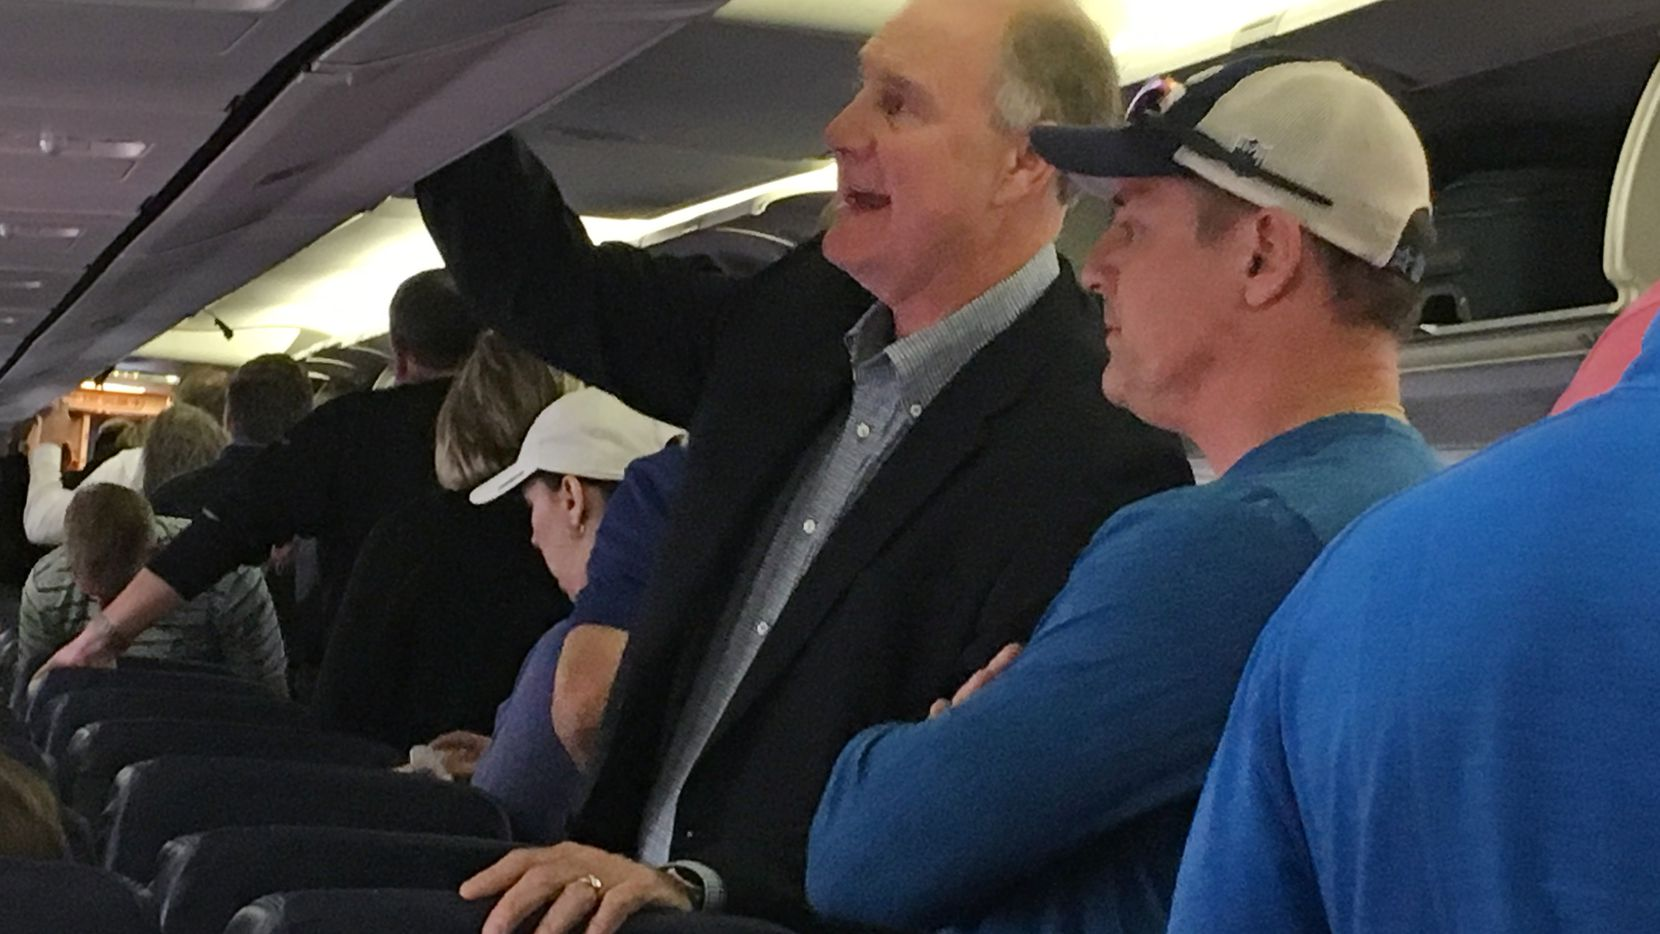 Southwest Airlines CEO Gary Kelly retrieves his bags from the overhead compartment after landing at Love Field on a Southwest flight from Atlanta, Monday, November 13, 2017.  Kelly says he flies with the rest of the passengers - no special treatment.